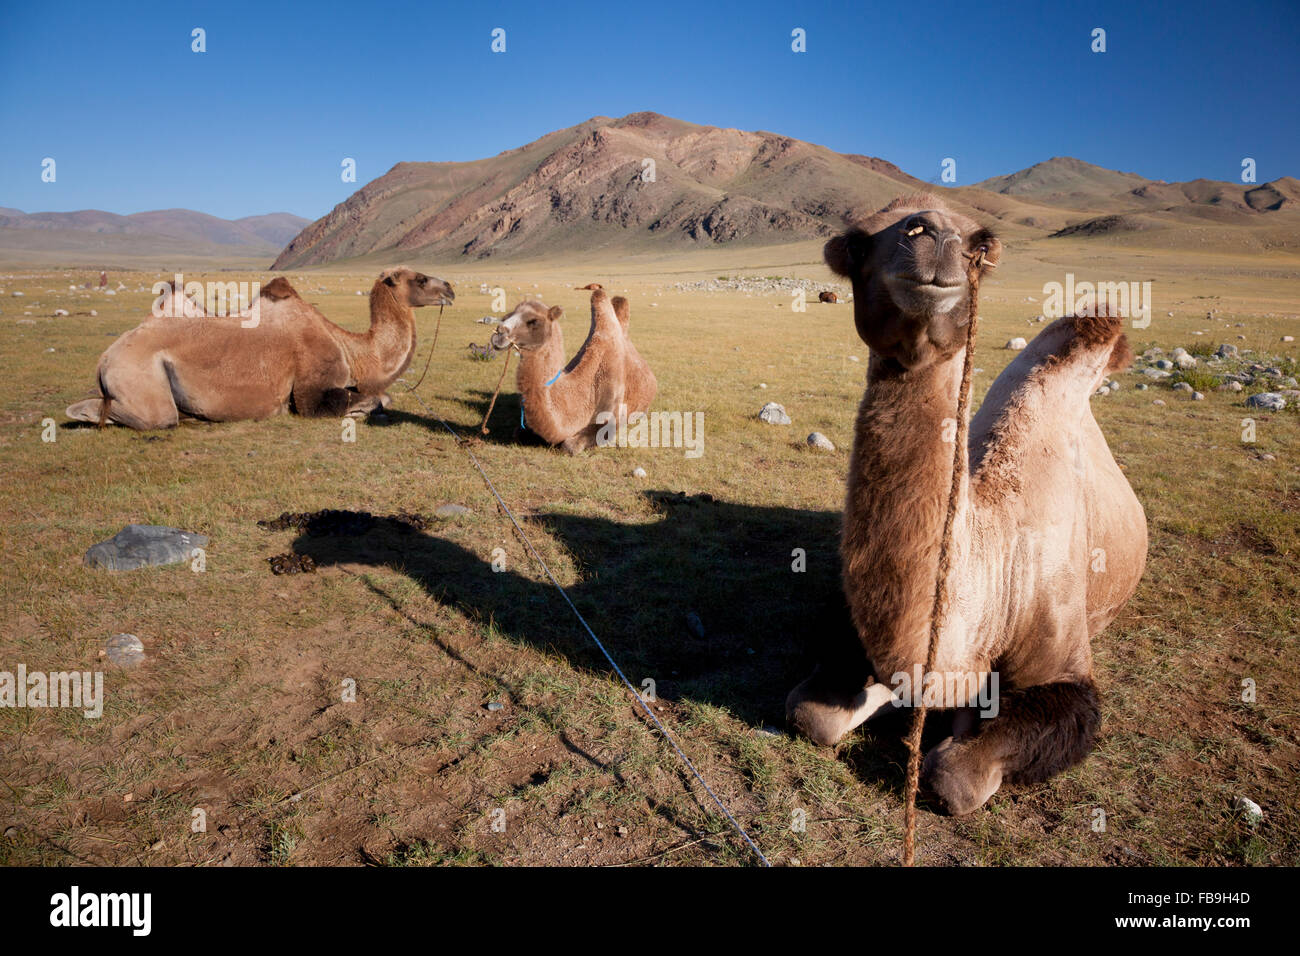 Pack camels staked and tied for grazing, Kharkhiraa Turgen National Park, Mongolia. - Stock Image